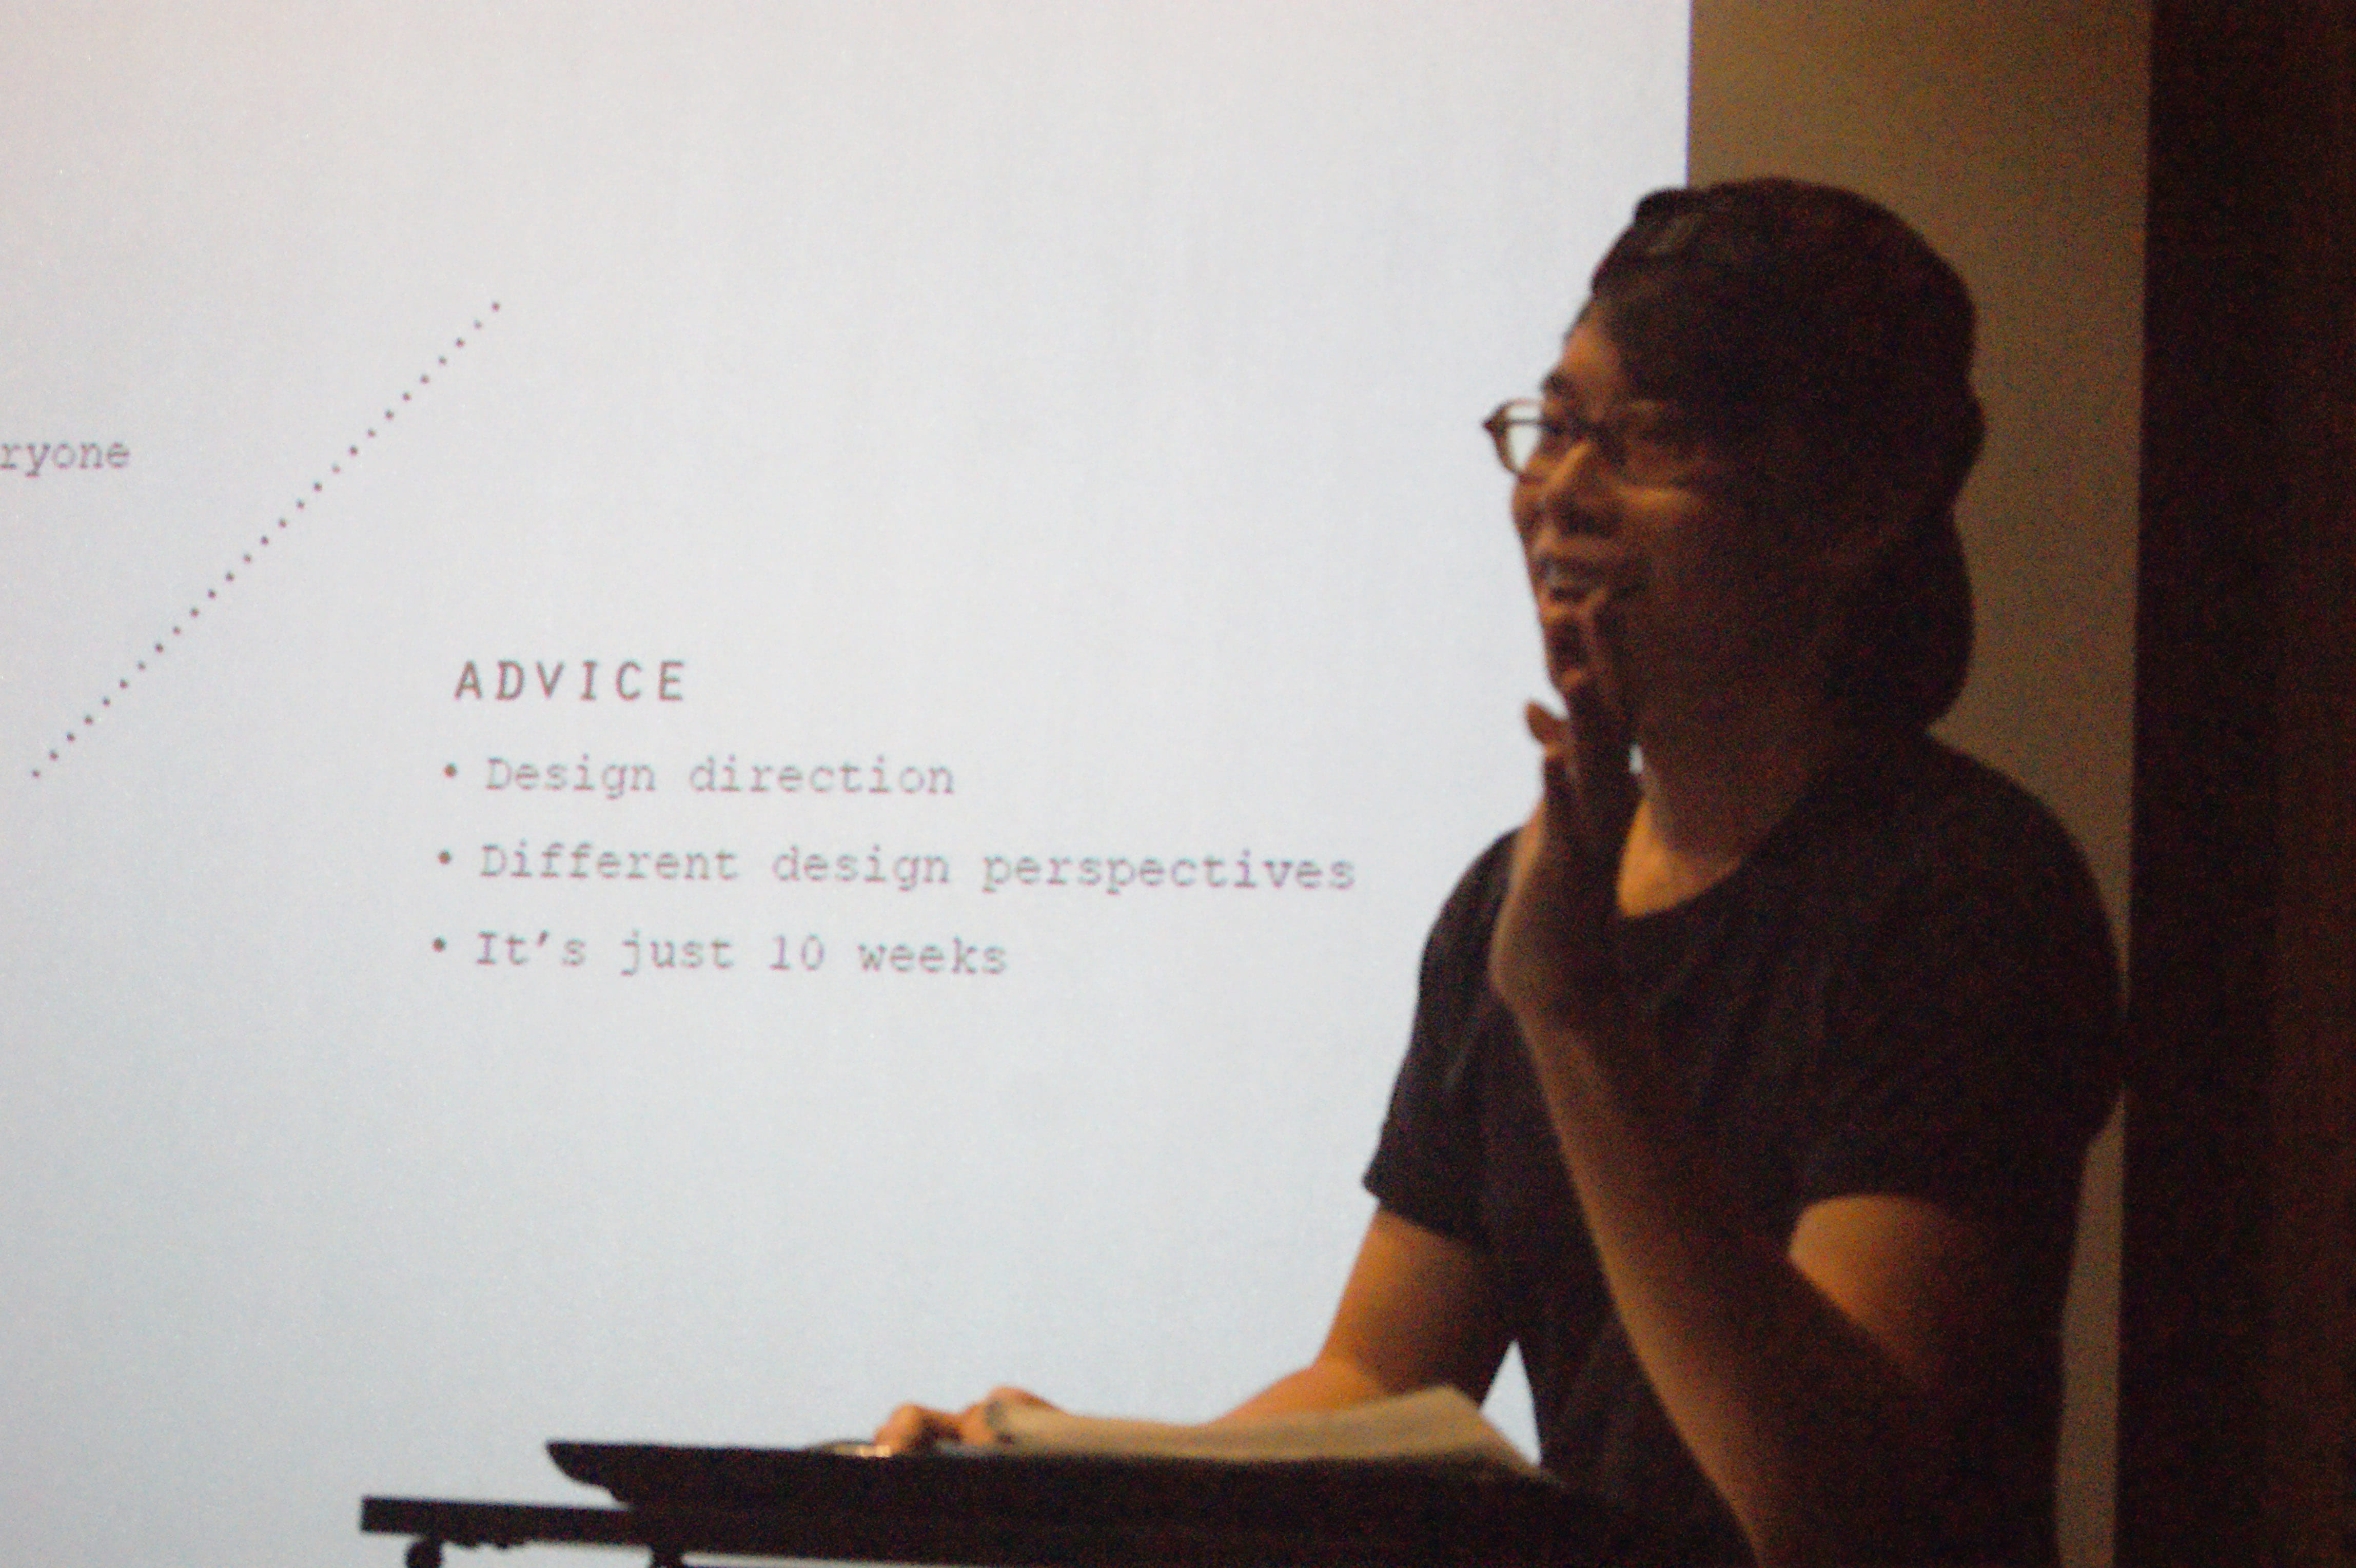 The self-source internship route: Presentation by Cheong Tong Pei